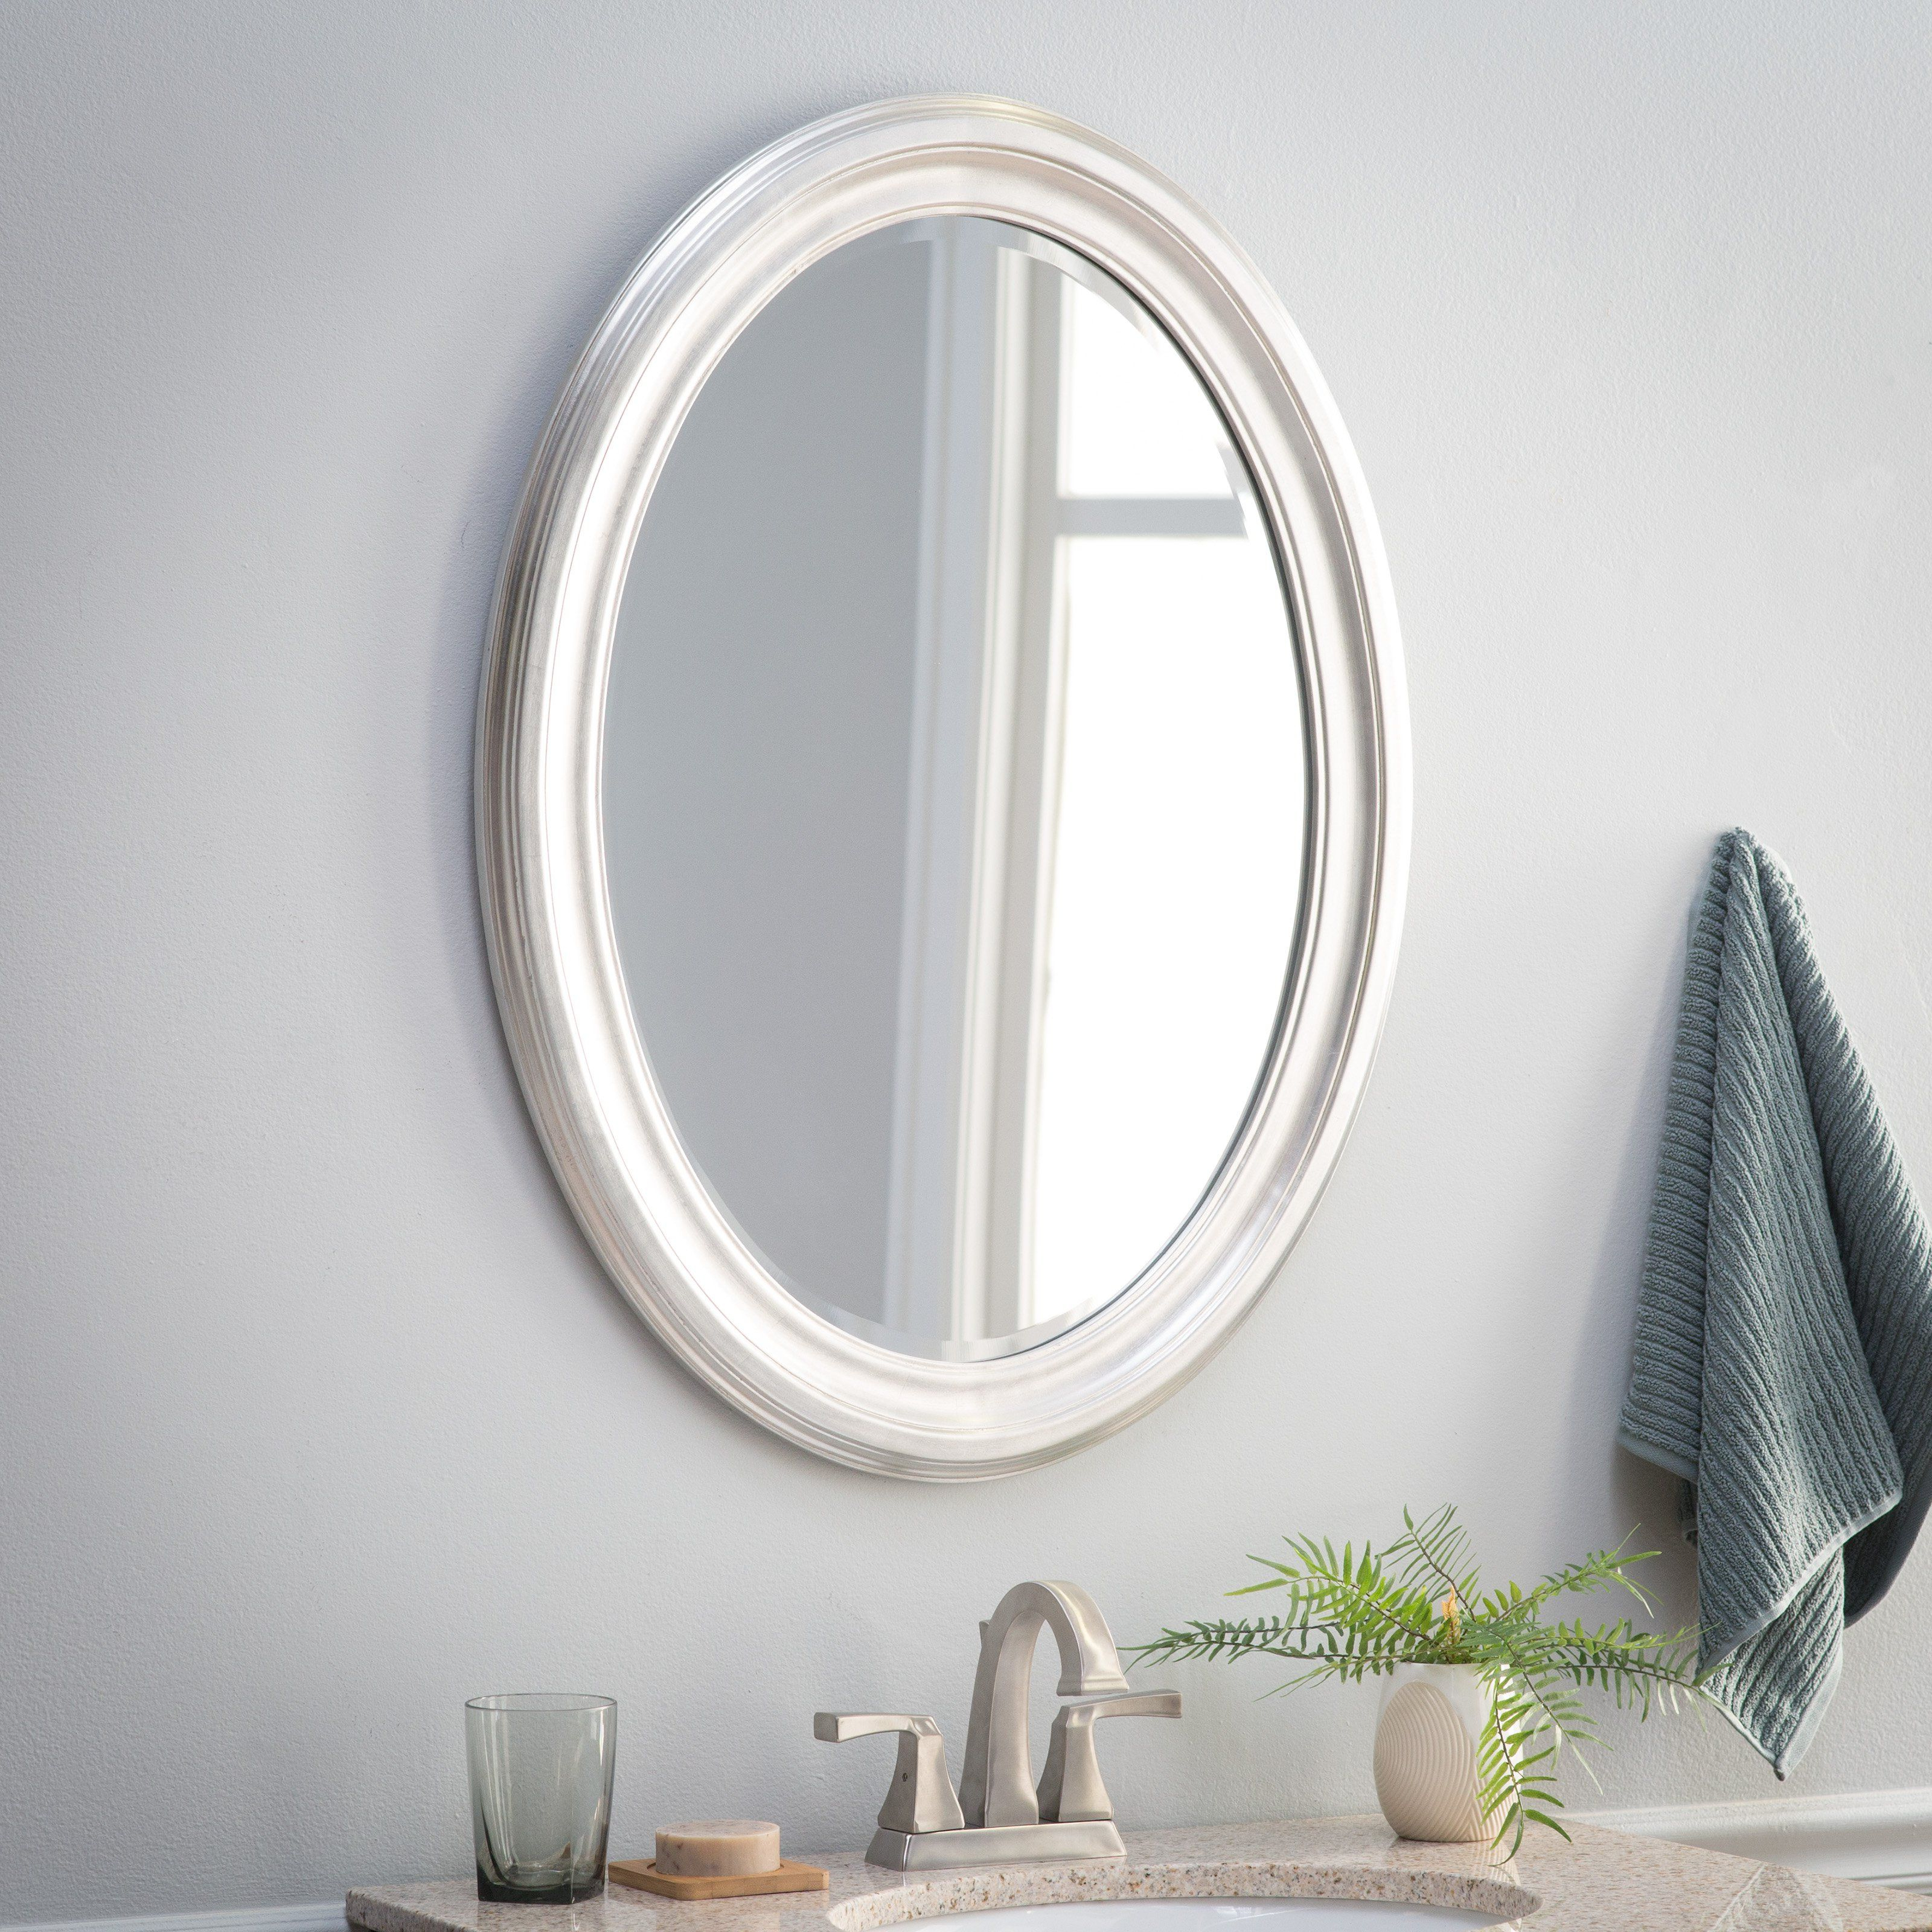 2019 Point Reyes Molten Round Wall Mirrors In Belham Living Oval Wall Mirror – Brushed Nickel – 25W X 33H In (View 2 of 20)